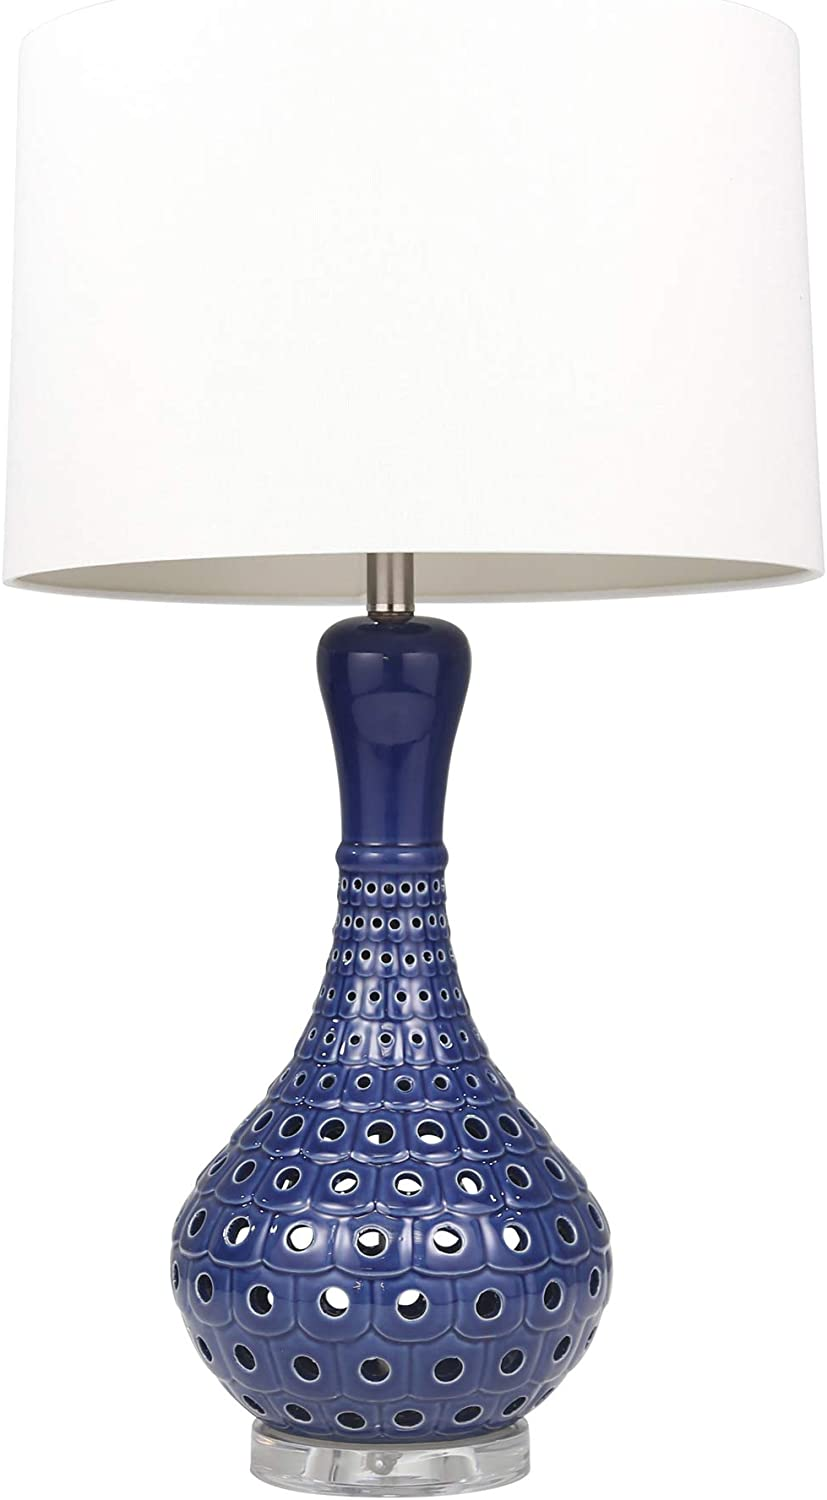 "Sagebrook Home 50201-02 Ceramic Pierced Bottle Table, Navy Blue, 31"" Lamps"